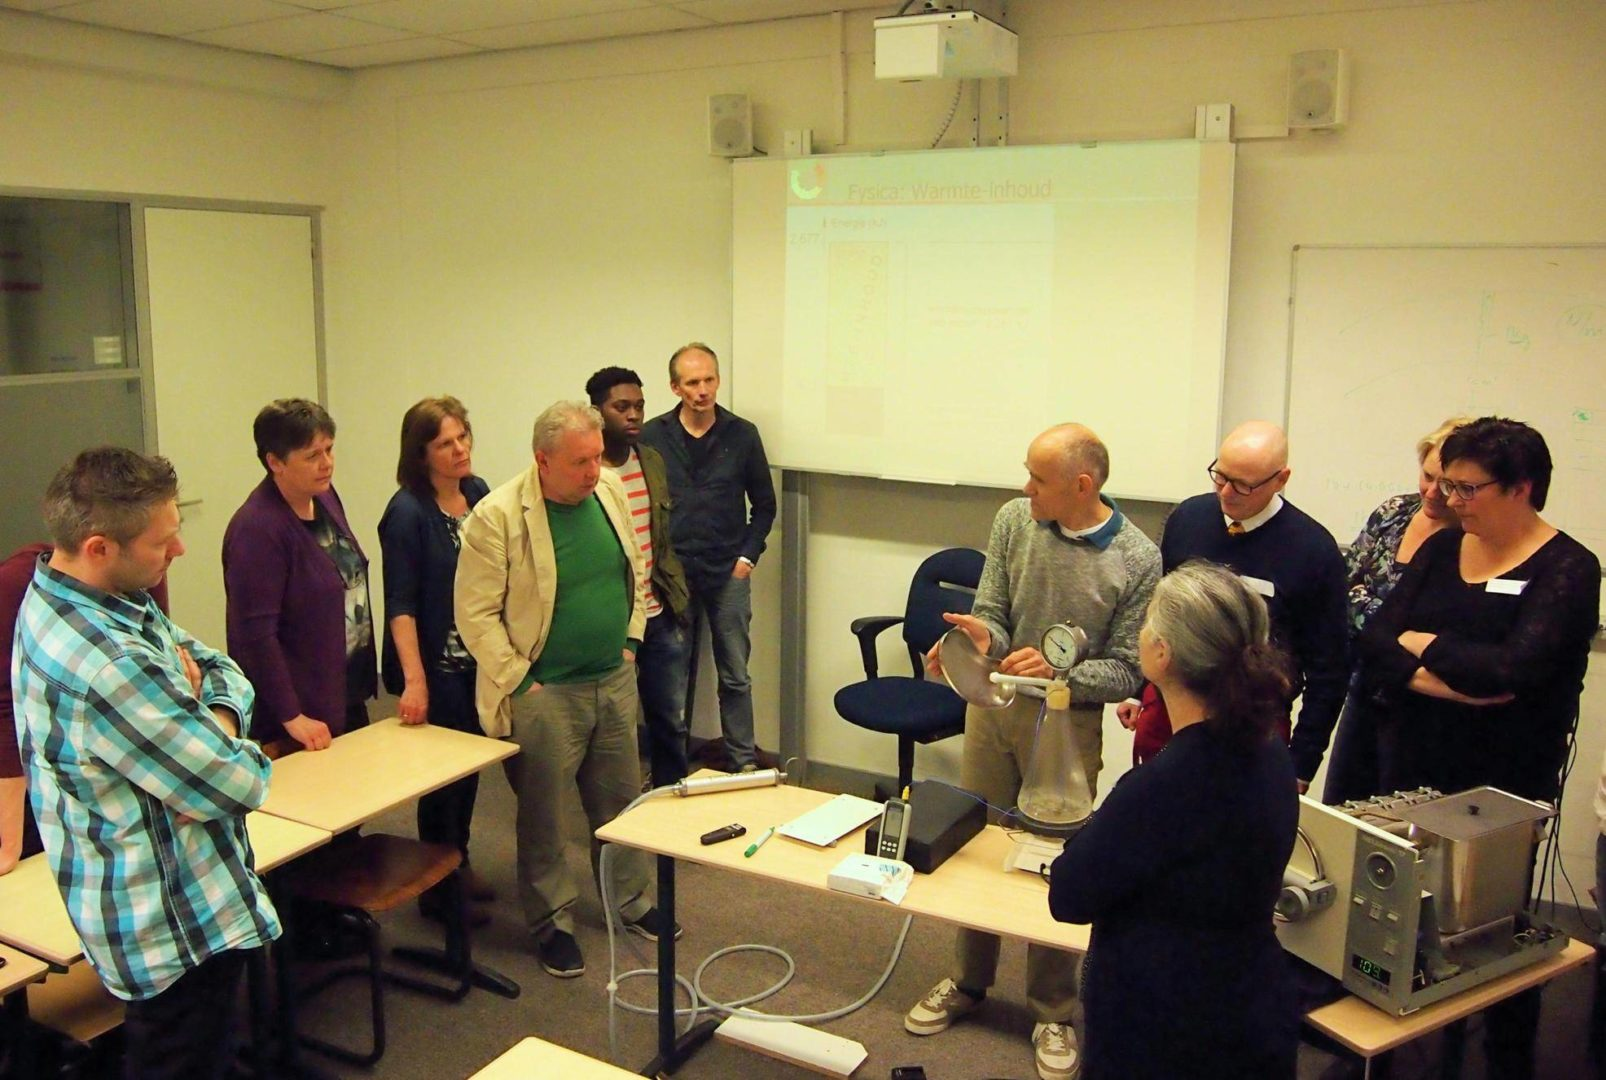 NL-Eindhoven Summa College 20160405 SteriAk: Refresher training of CSSD staff: explaining the physics of steam. The candidates did a pilot e-leaning course. At the end of the theoretical part they came for a closing practical evening to Eindhoven.